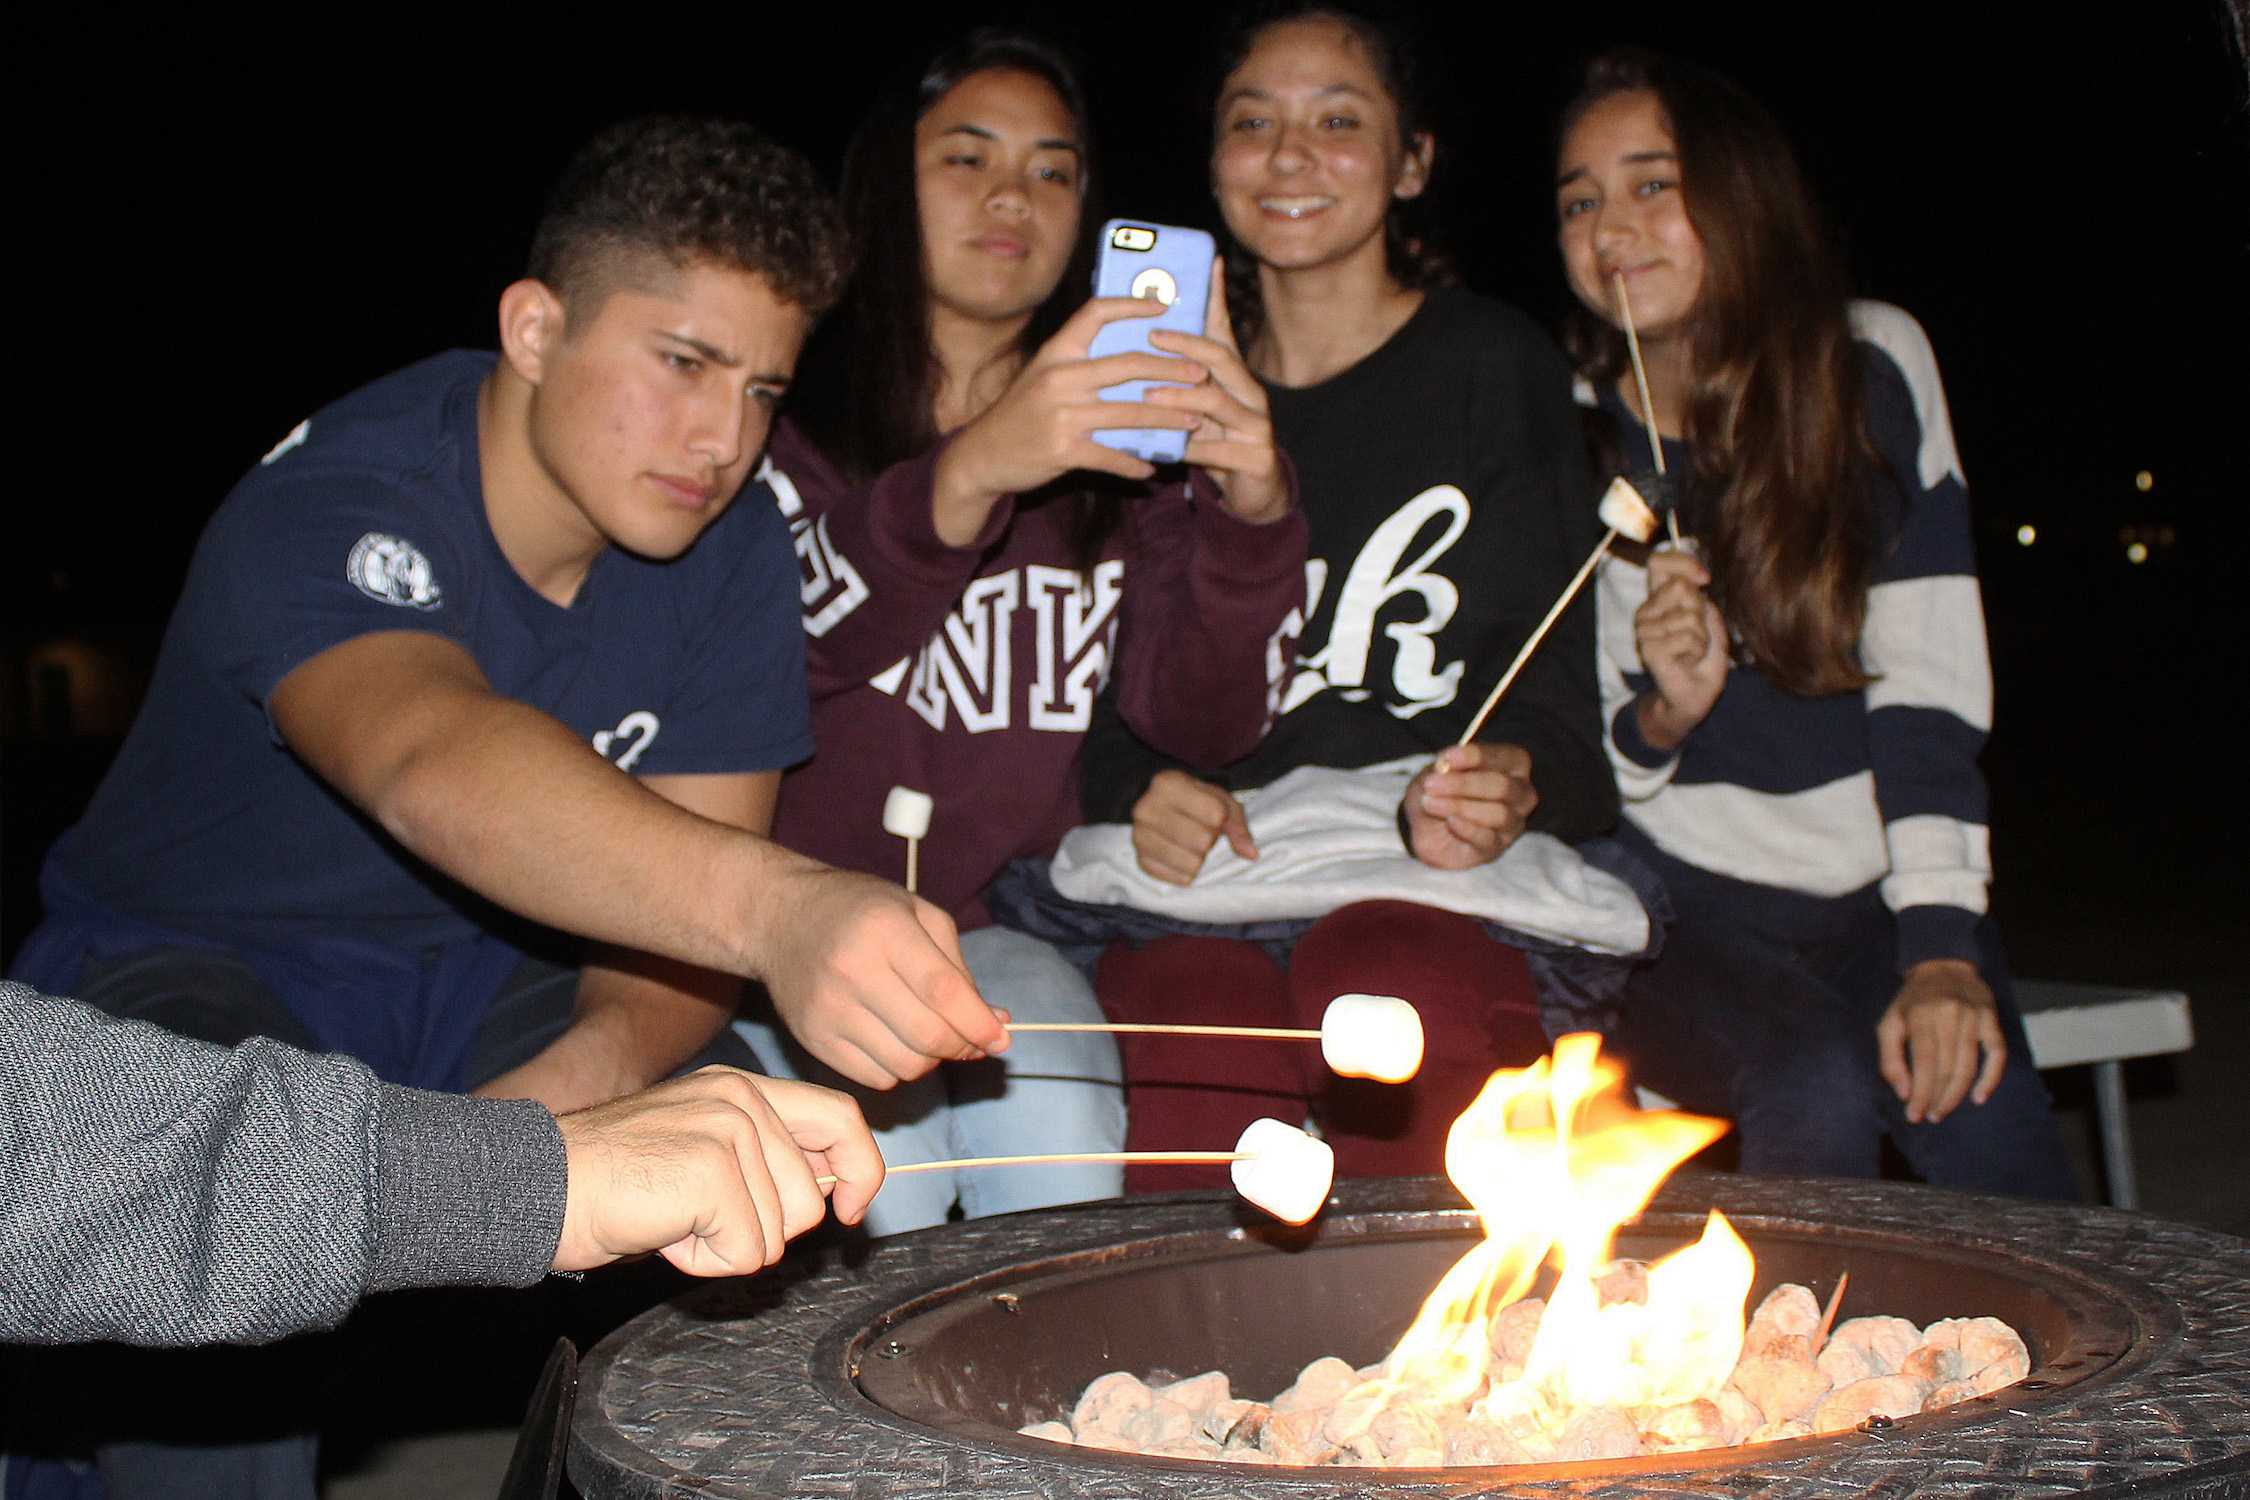 Sophomores gather around a fire pit roasting marshmallows for s'mores. Instead of sleeping over, sophomores spent an early night bonding with their class and their family.